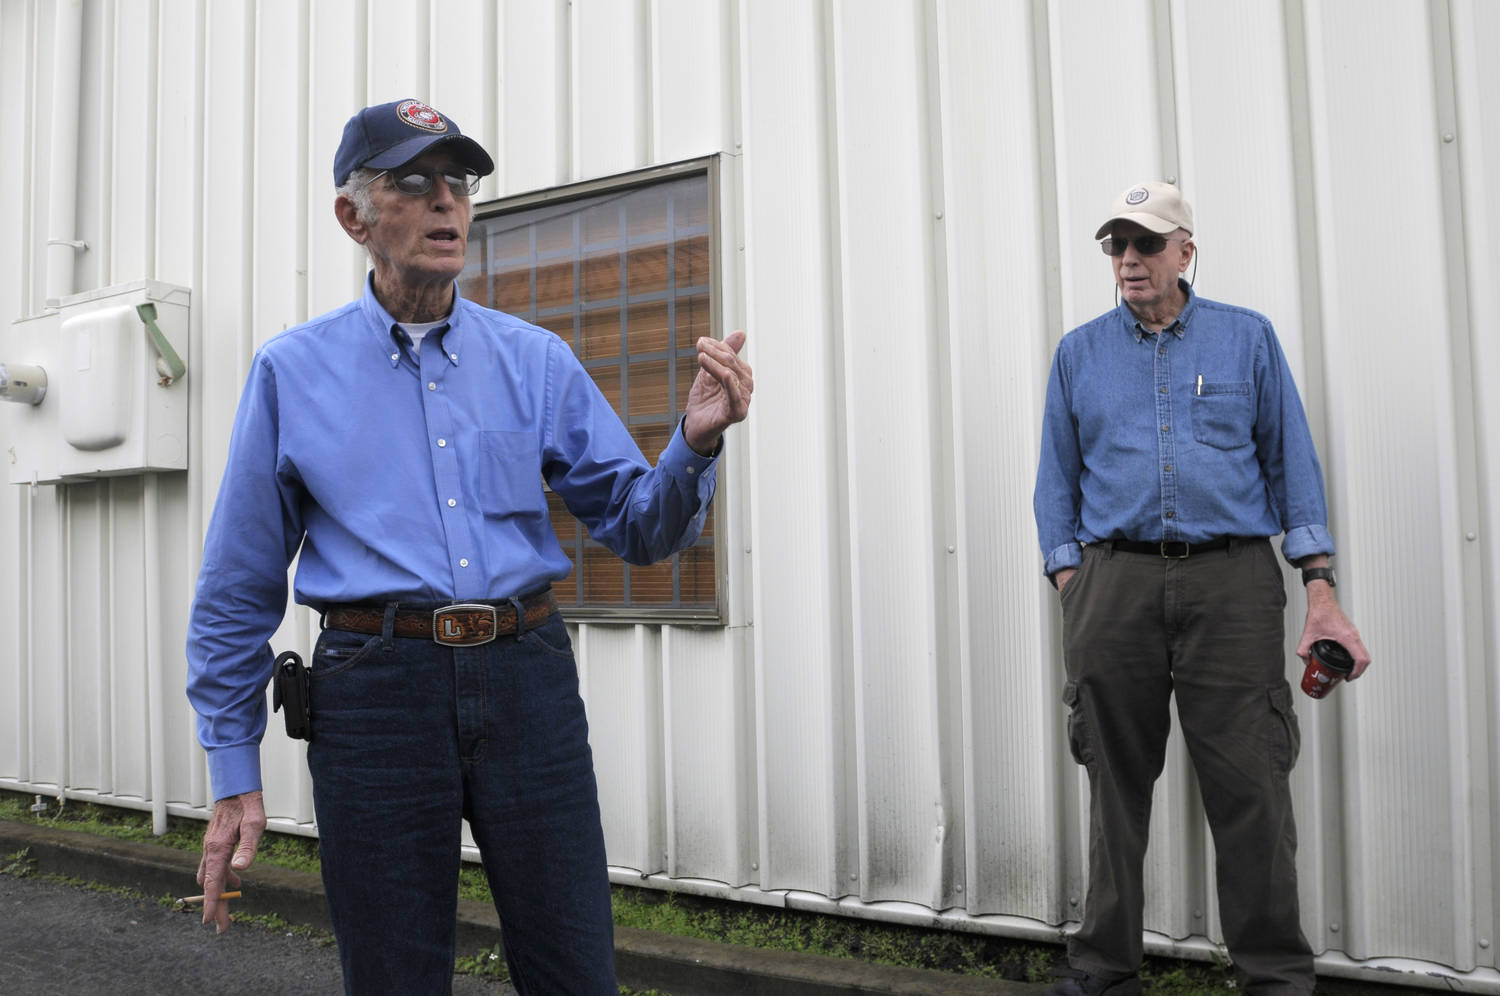 Two men, both wearing blue work shirt and baseball caps, stand near a steel building. The man on the left is speaking, the other looks at him from slightly farther away.